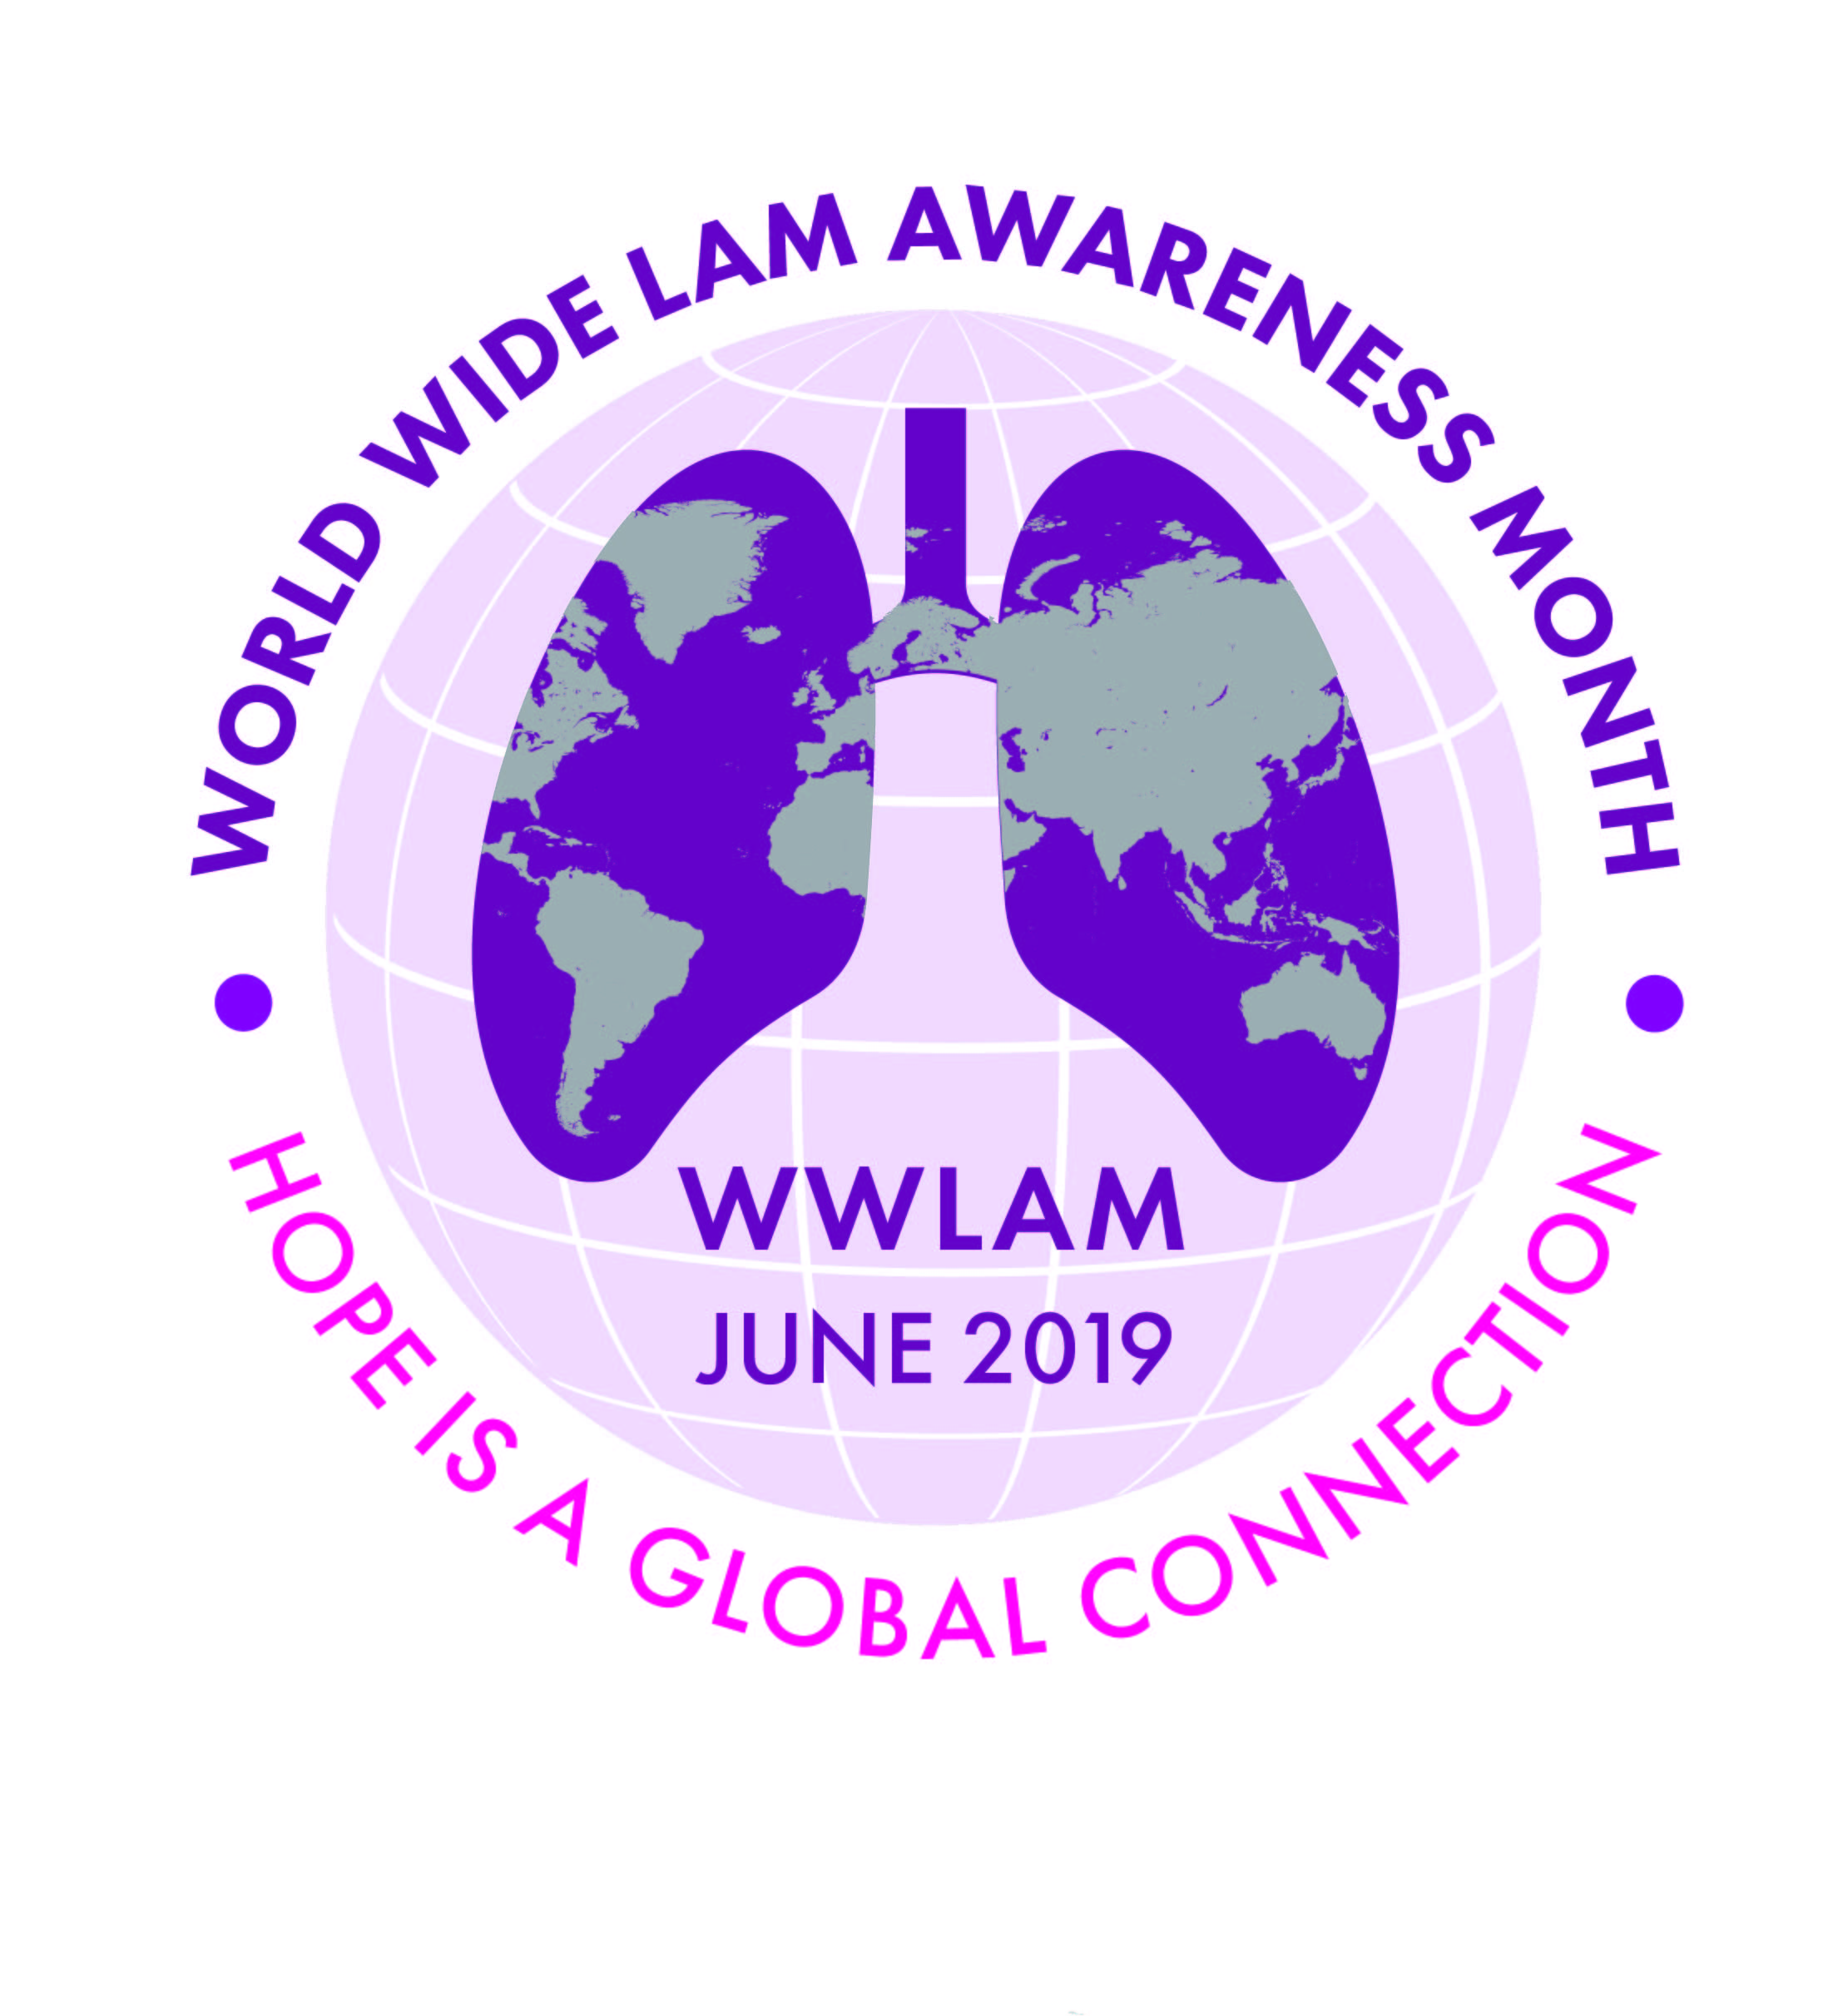 Worldwide LAM Awareness Month - Hope is a Global Connection